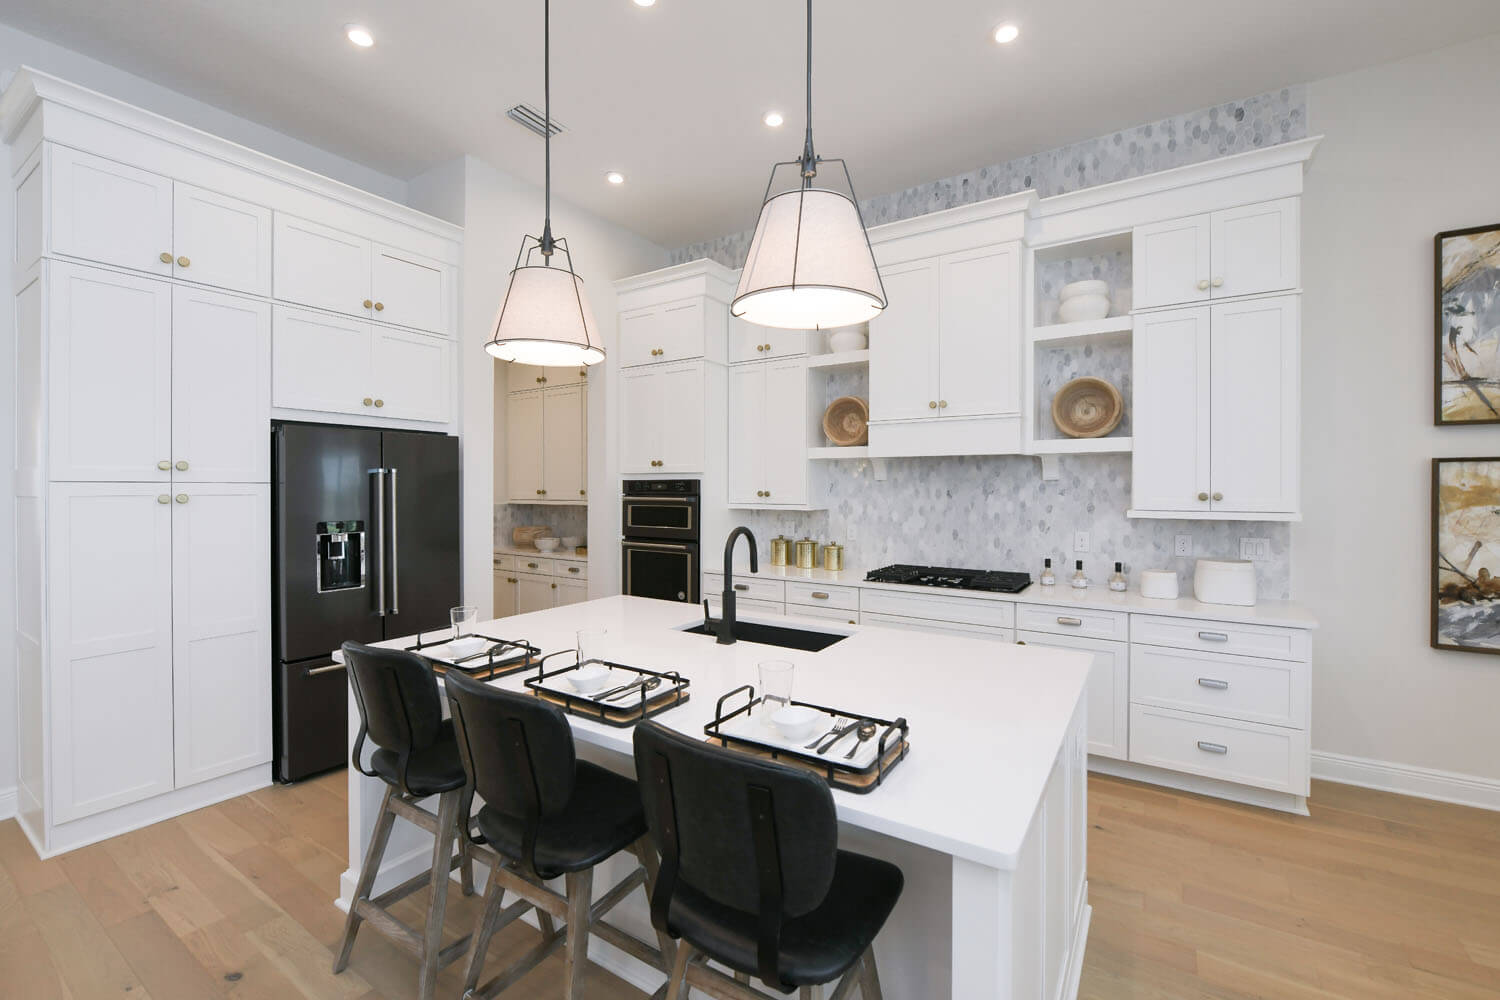 New Tampa  Model Home Savannah in Worthington, located at 4608 Antrim Drive, Sarasota, FL Built By Cardel Homes Tampa